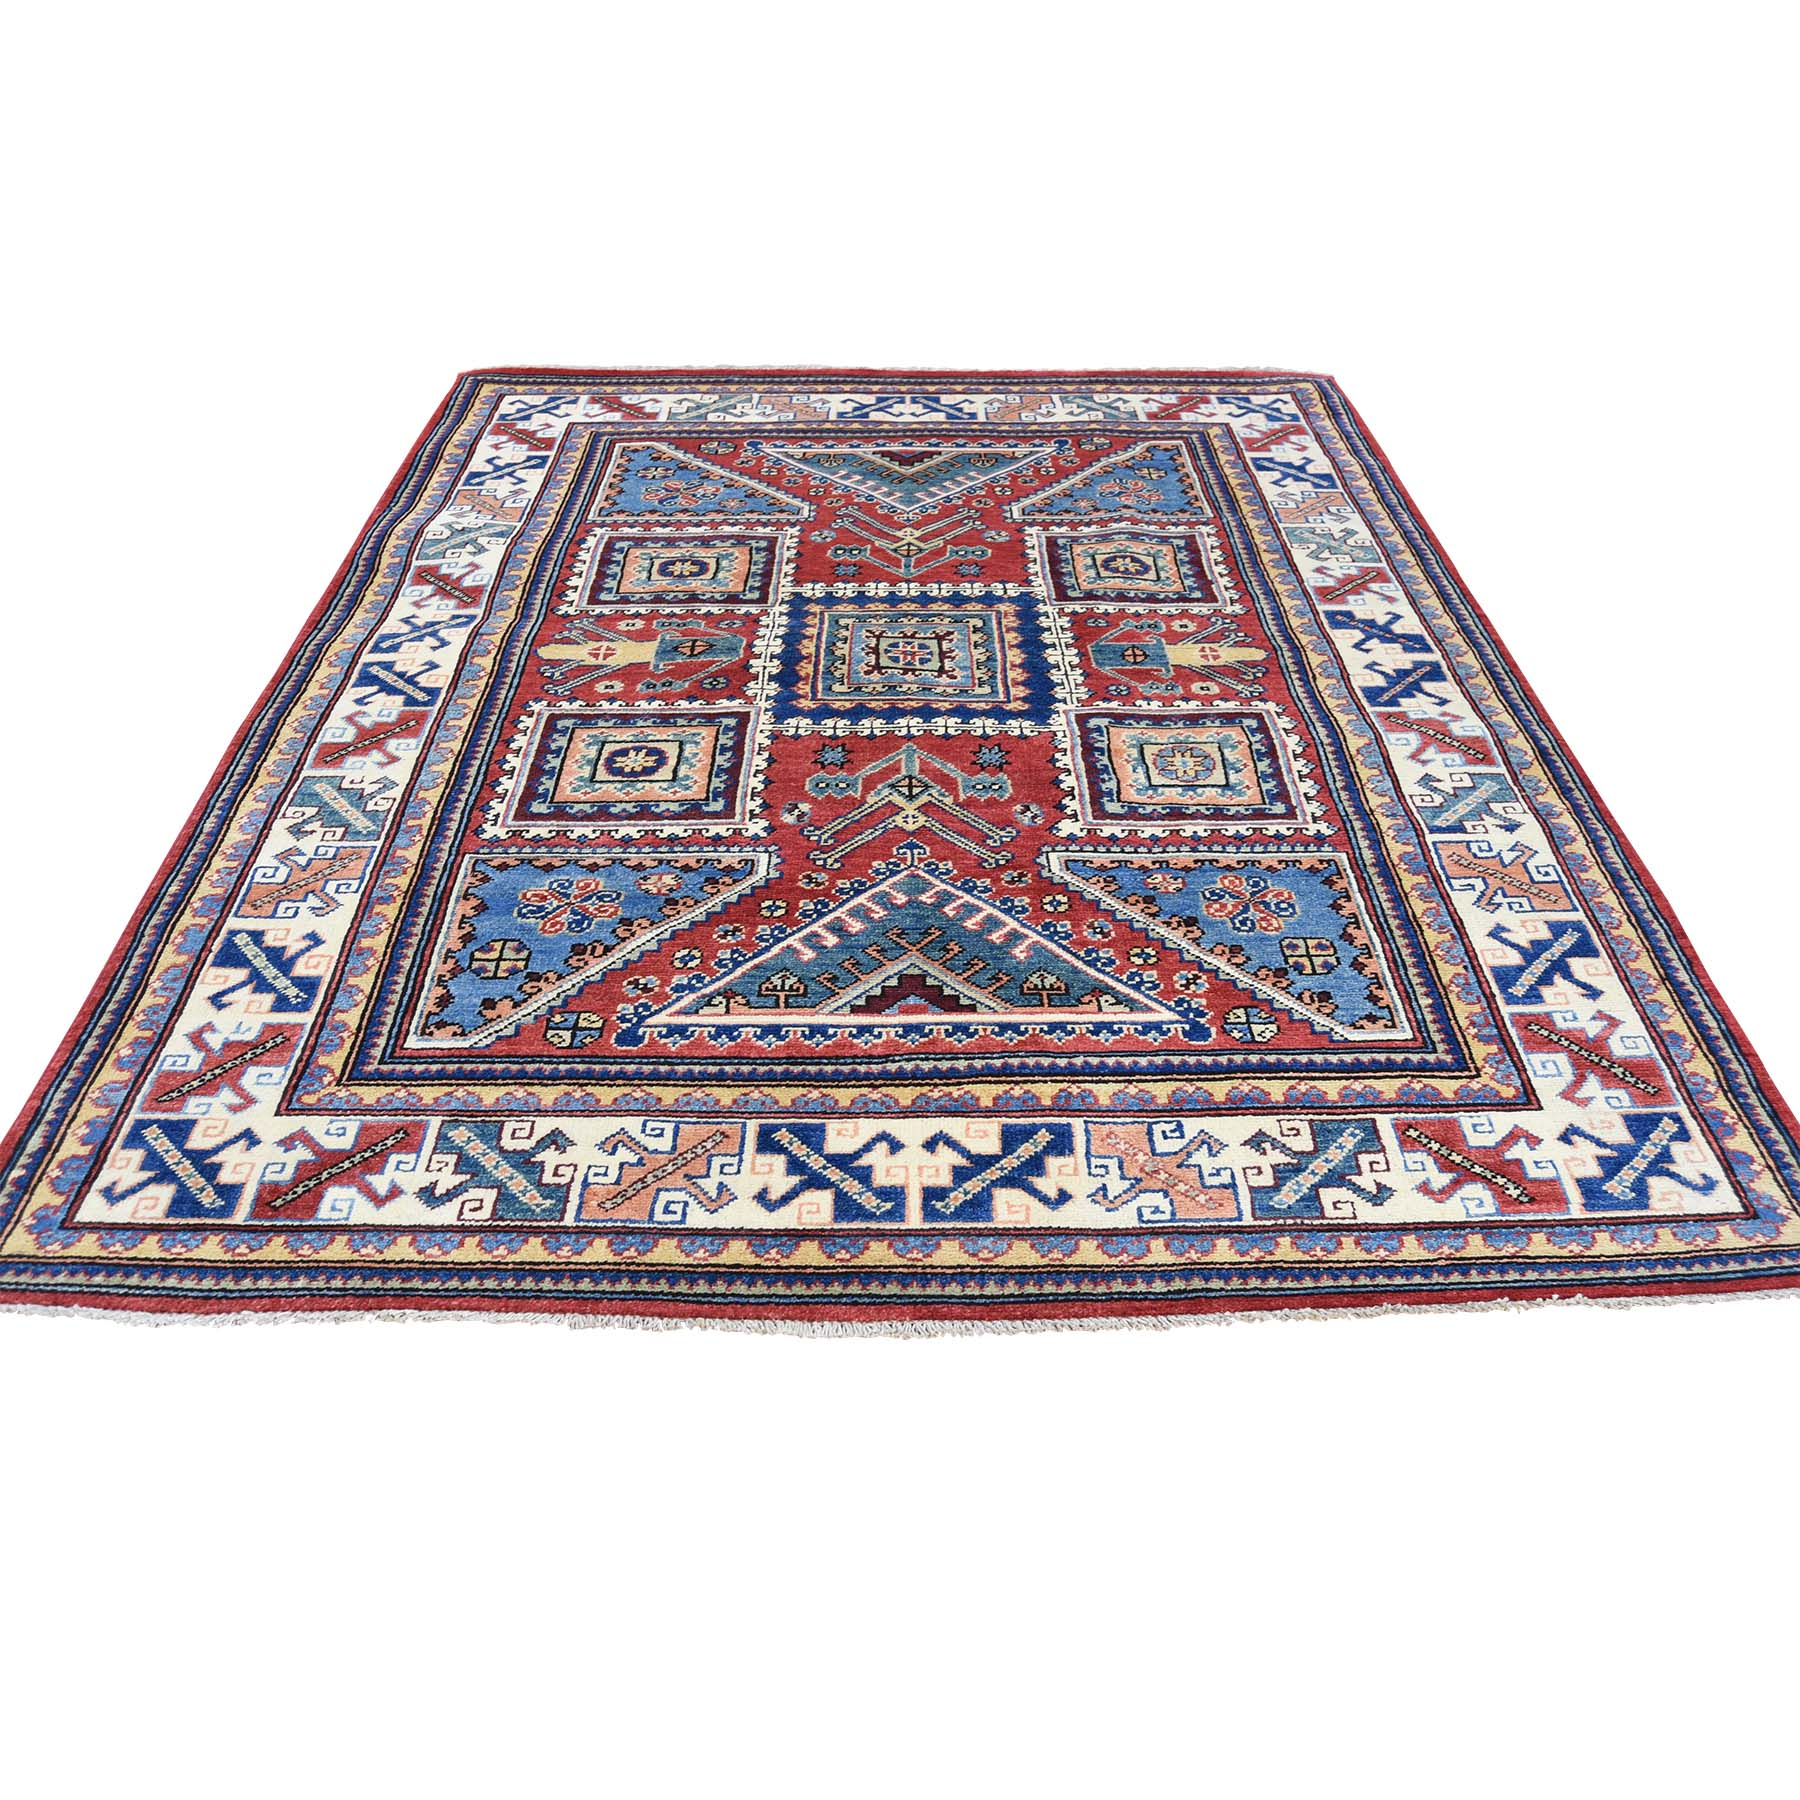 5'X6'5'' Hand-Knotted Pure Wool Red Special Kazak Oriental Rug moac88b6